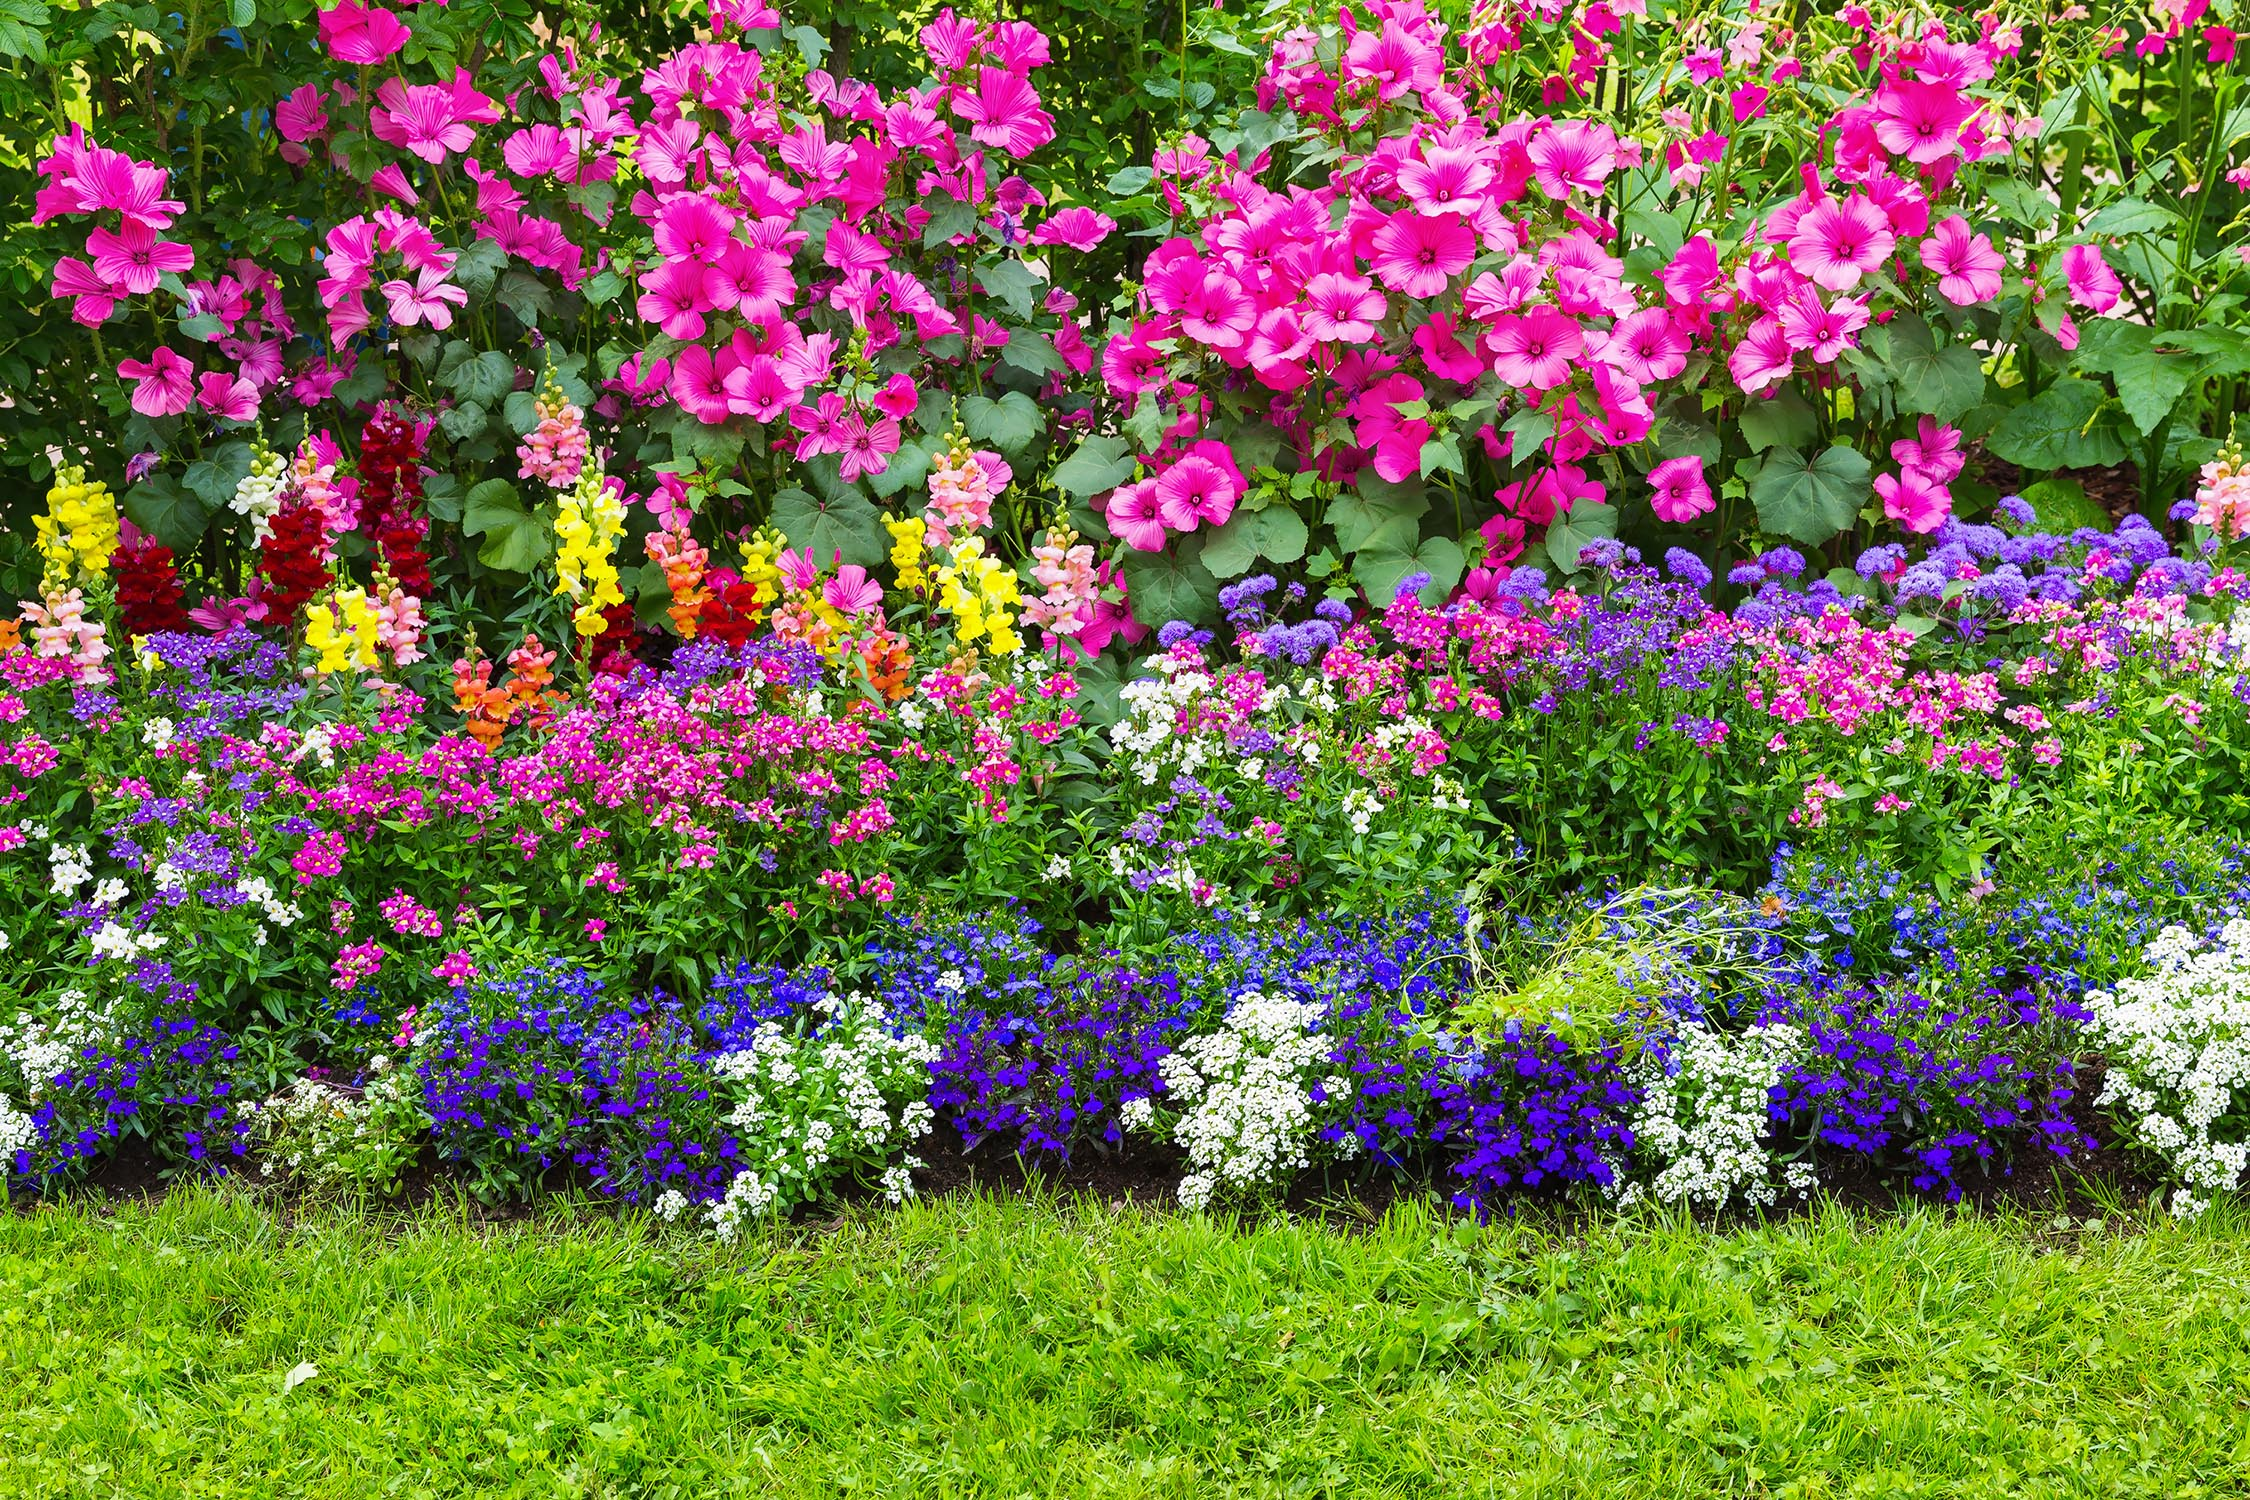 Beautifully landscaped flower beds